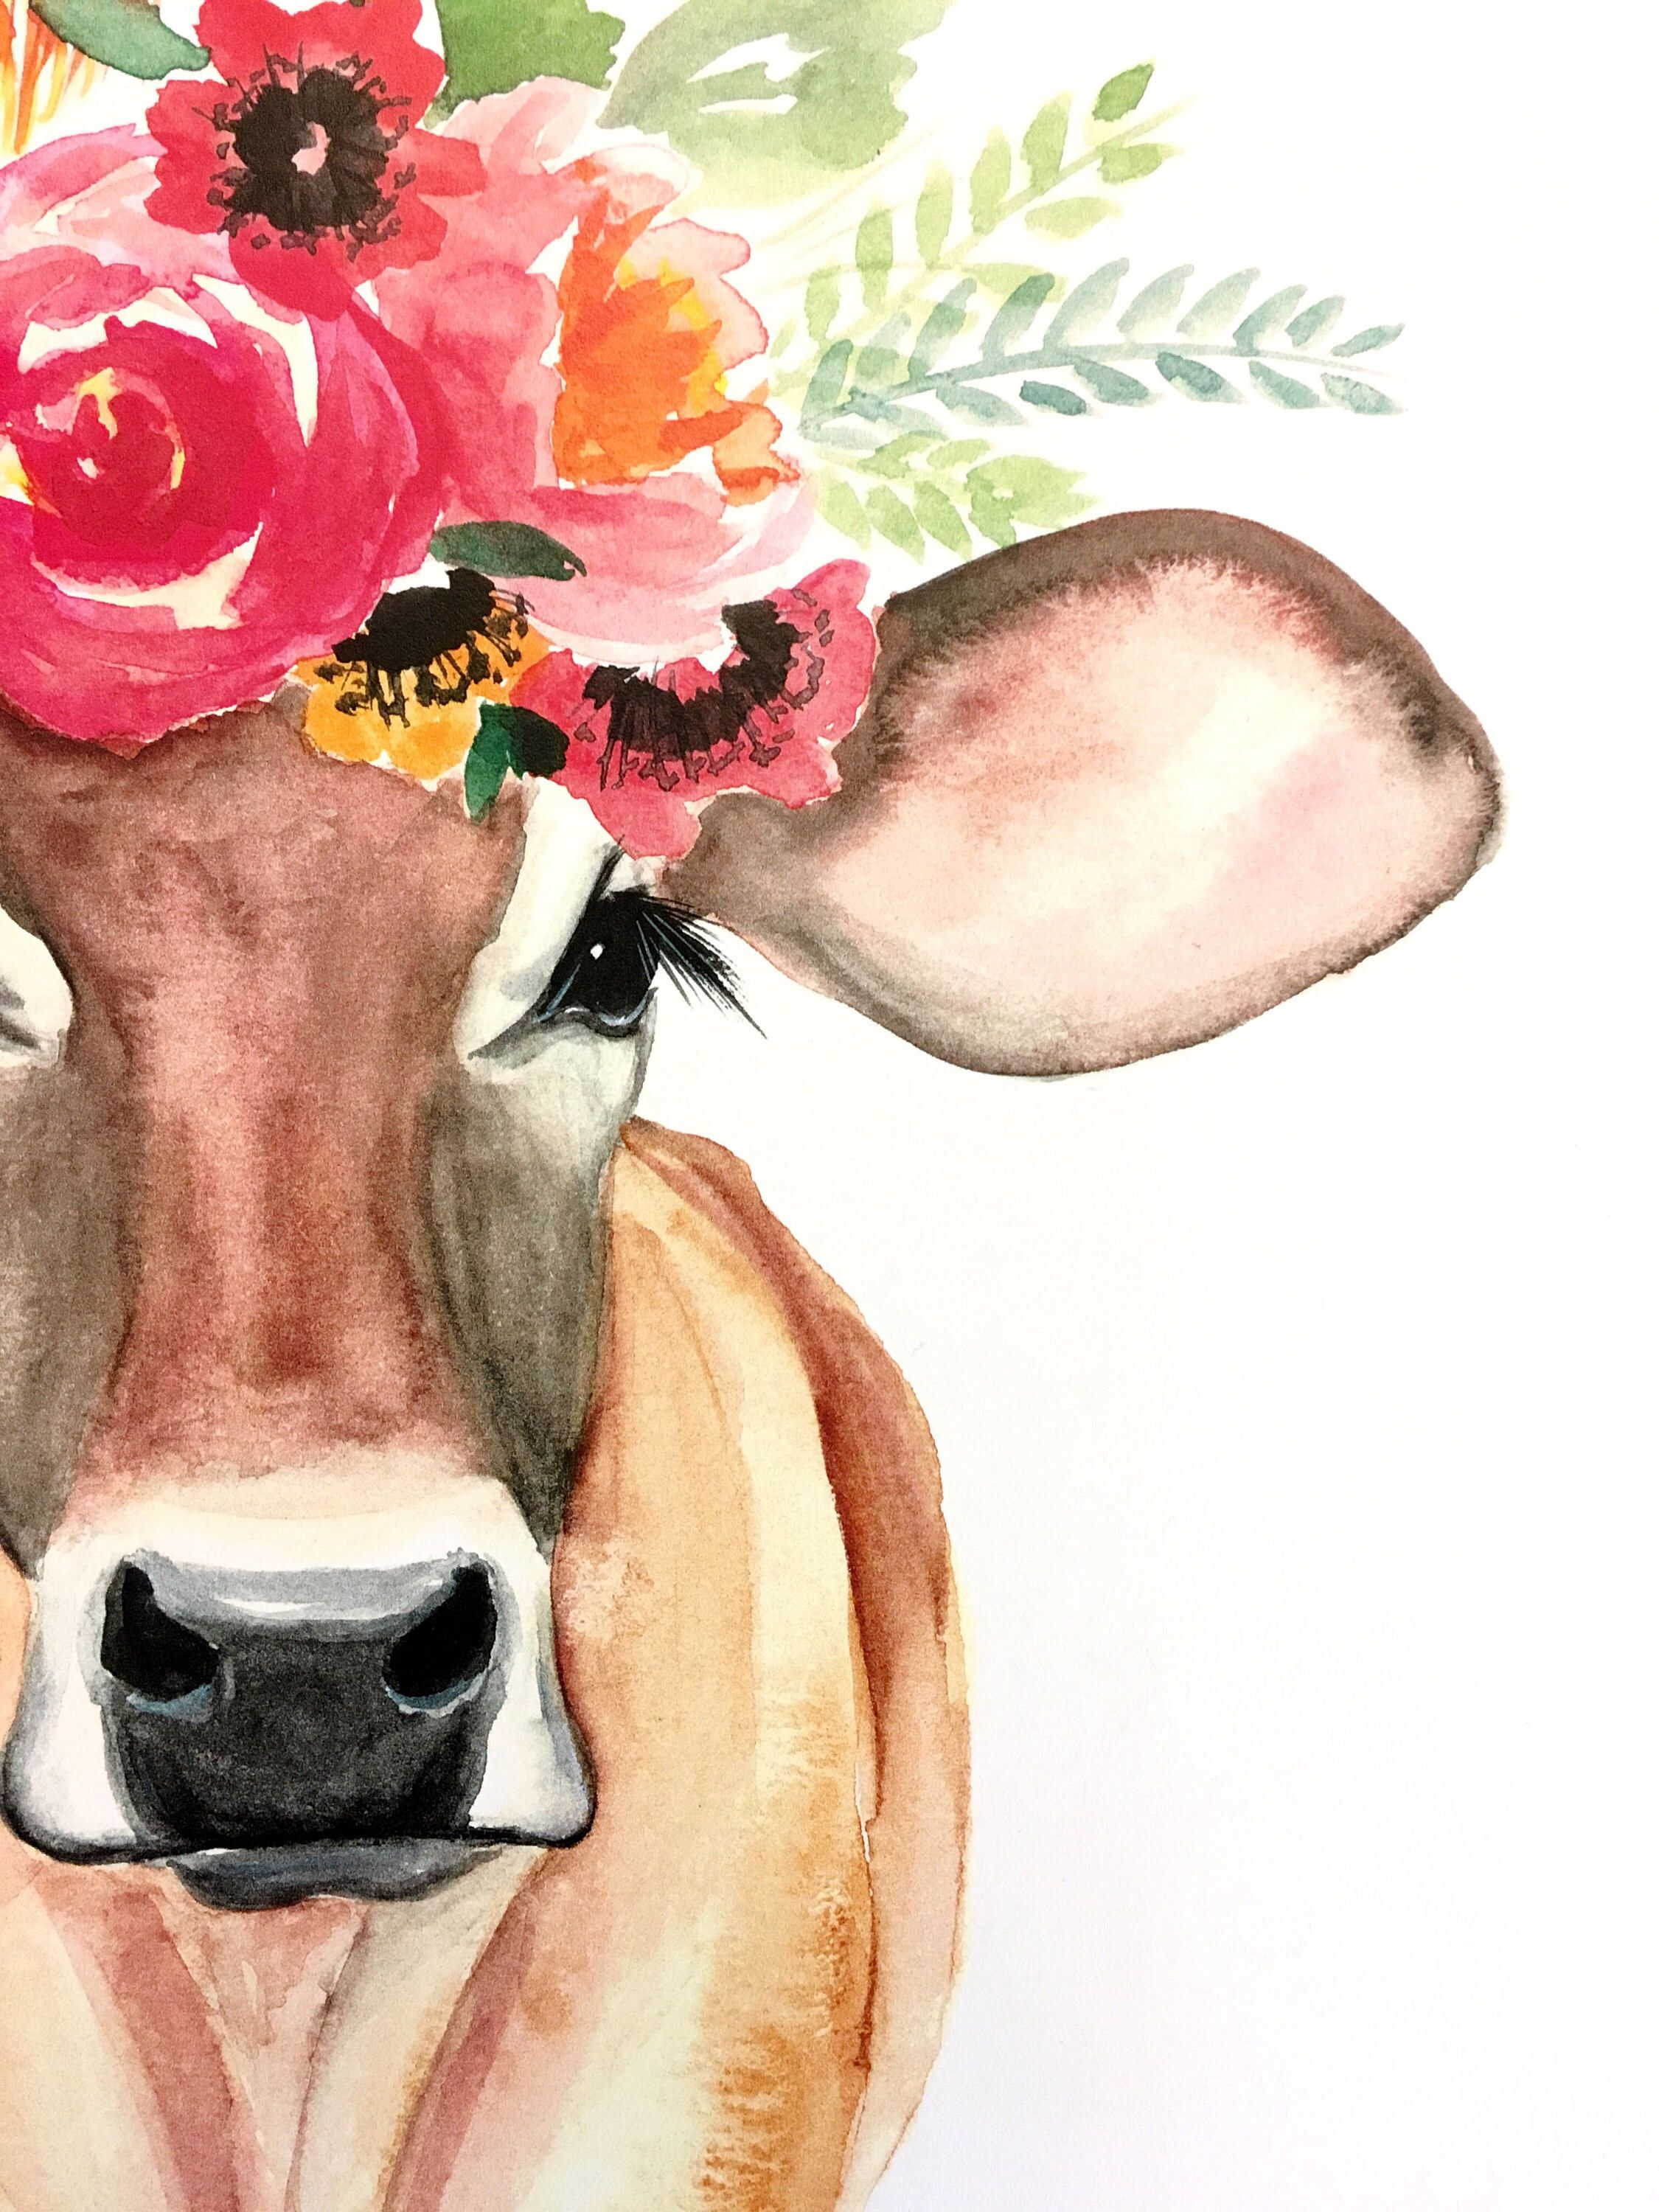 Miranda the cow print floral cow floral crown cow simple things limited edition carmen the cow print etsy art painting housewarming whimsicalart farmart floralcow cow izmirmasajfo